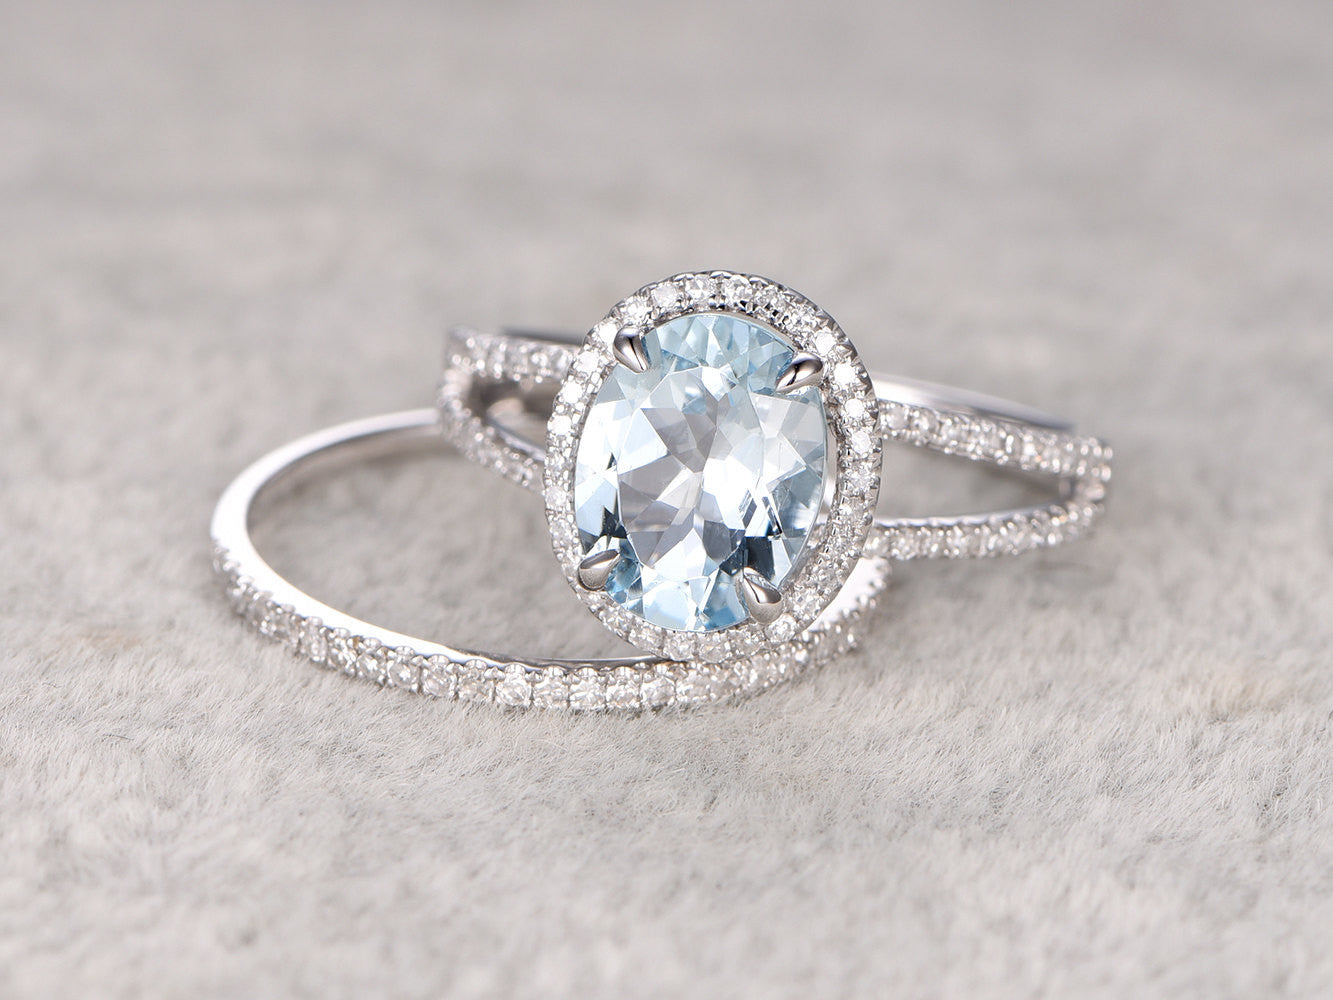 2pcs 8x10mm Oval Blue Aquamarine Wedding ring set.Engagement ring,Diamond wedding band,14K White Gold,Gemstone Promise Bridal Ring,Stacking